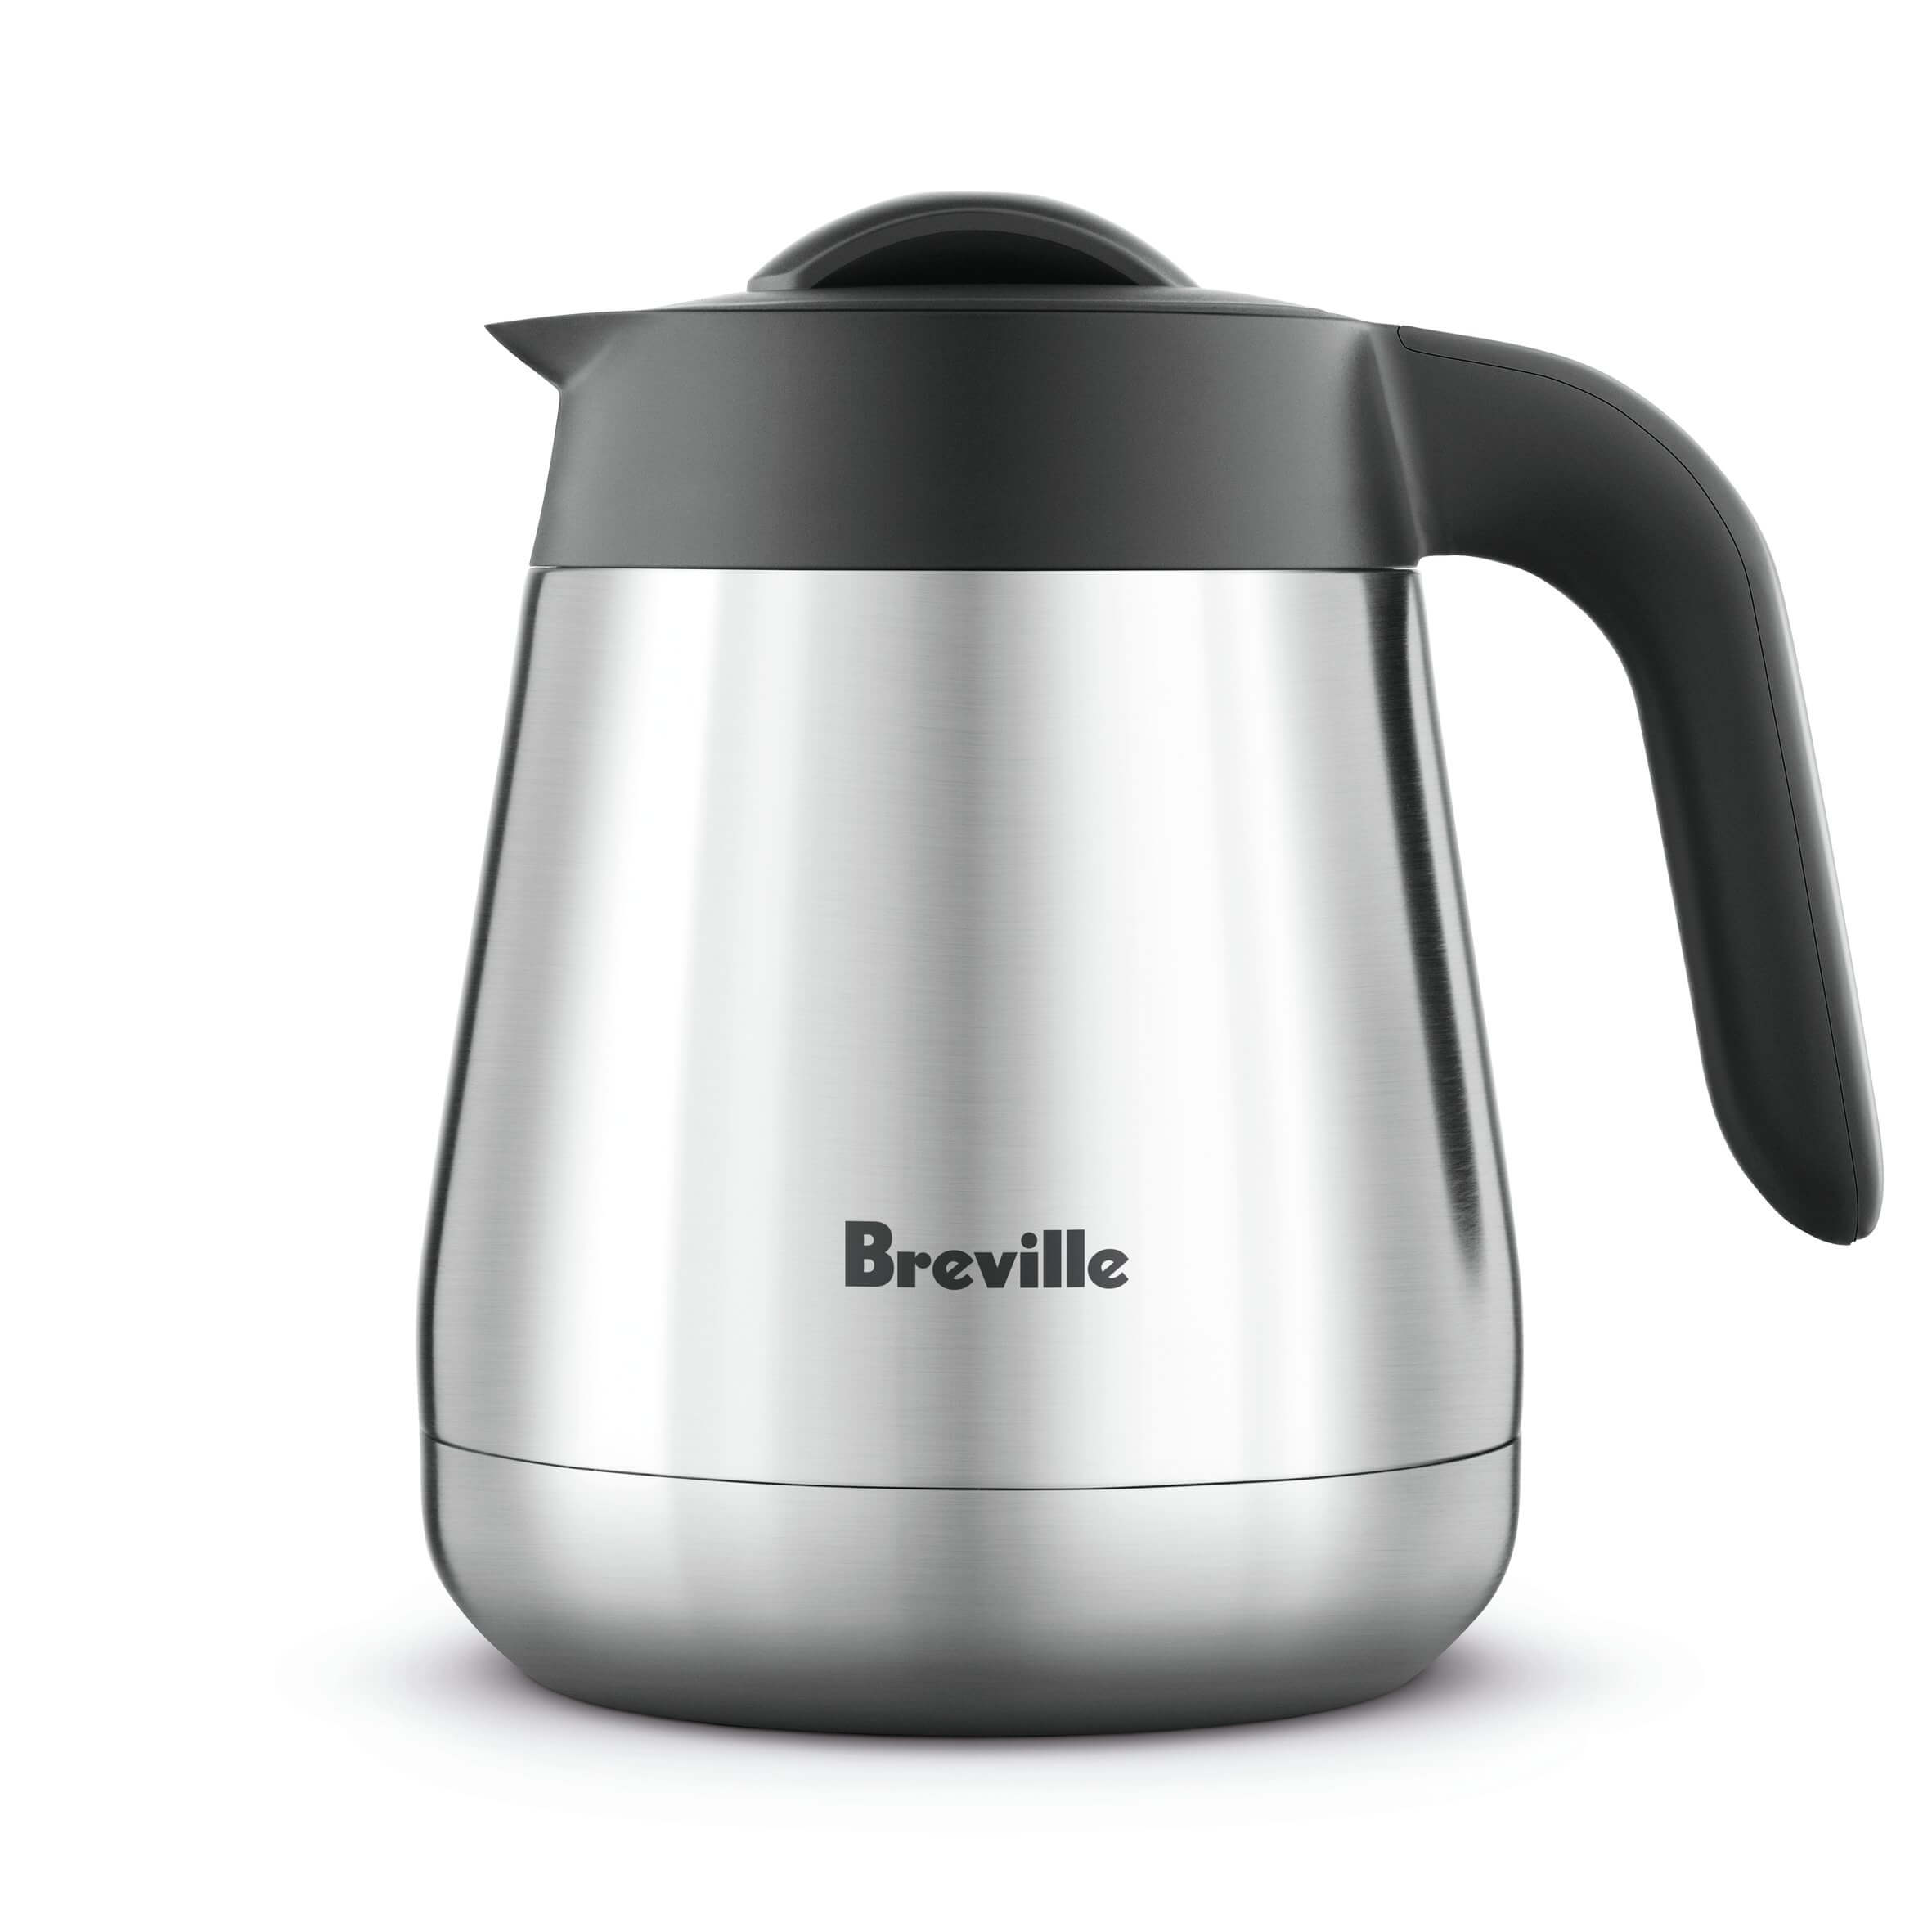 Breville BDC450 Precision Brewer Coffee Maker, coffee maker with grinder, best home coffee maker, the best coffee maker